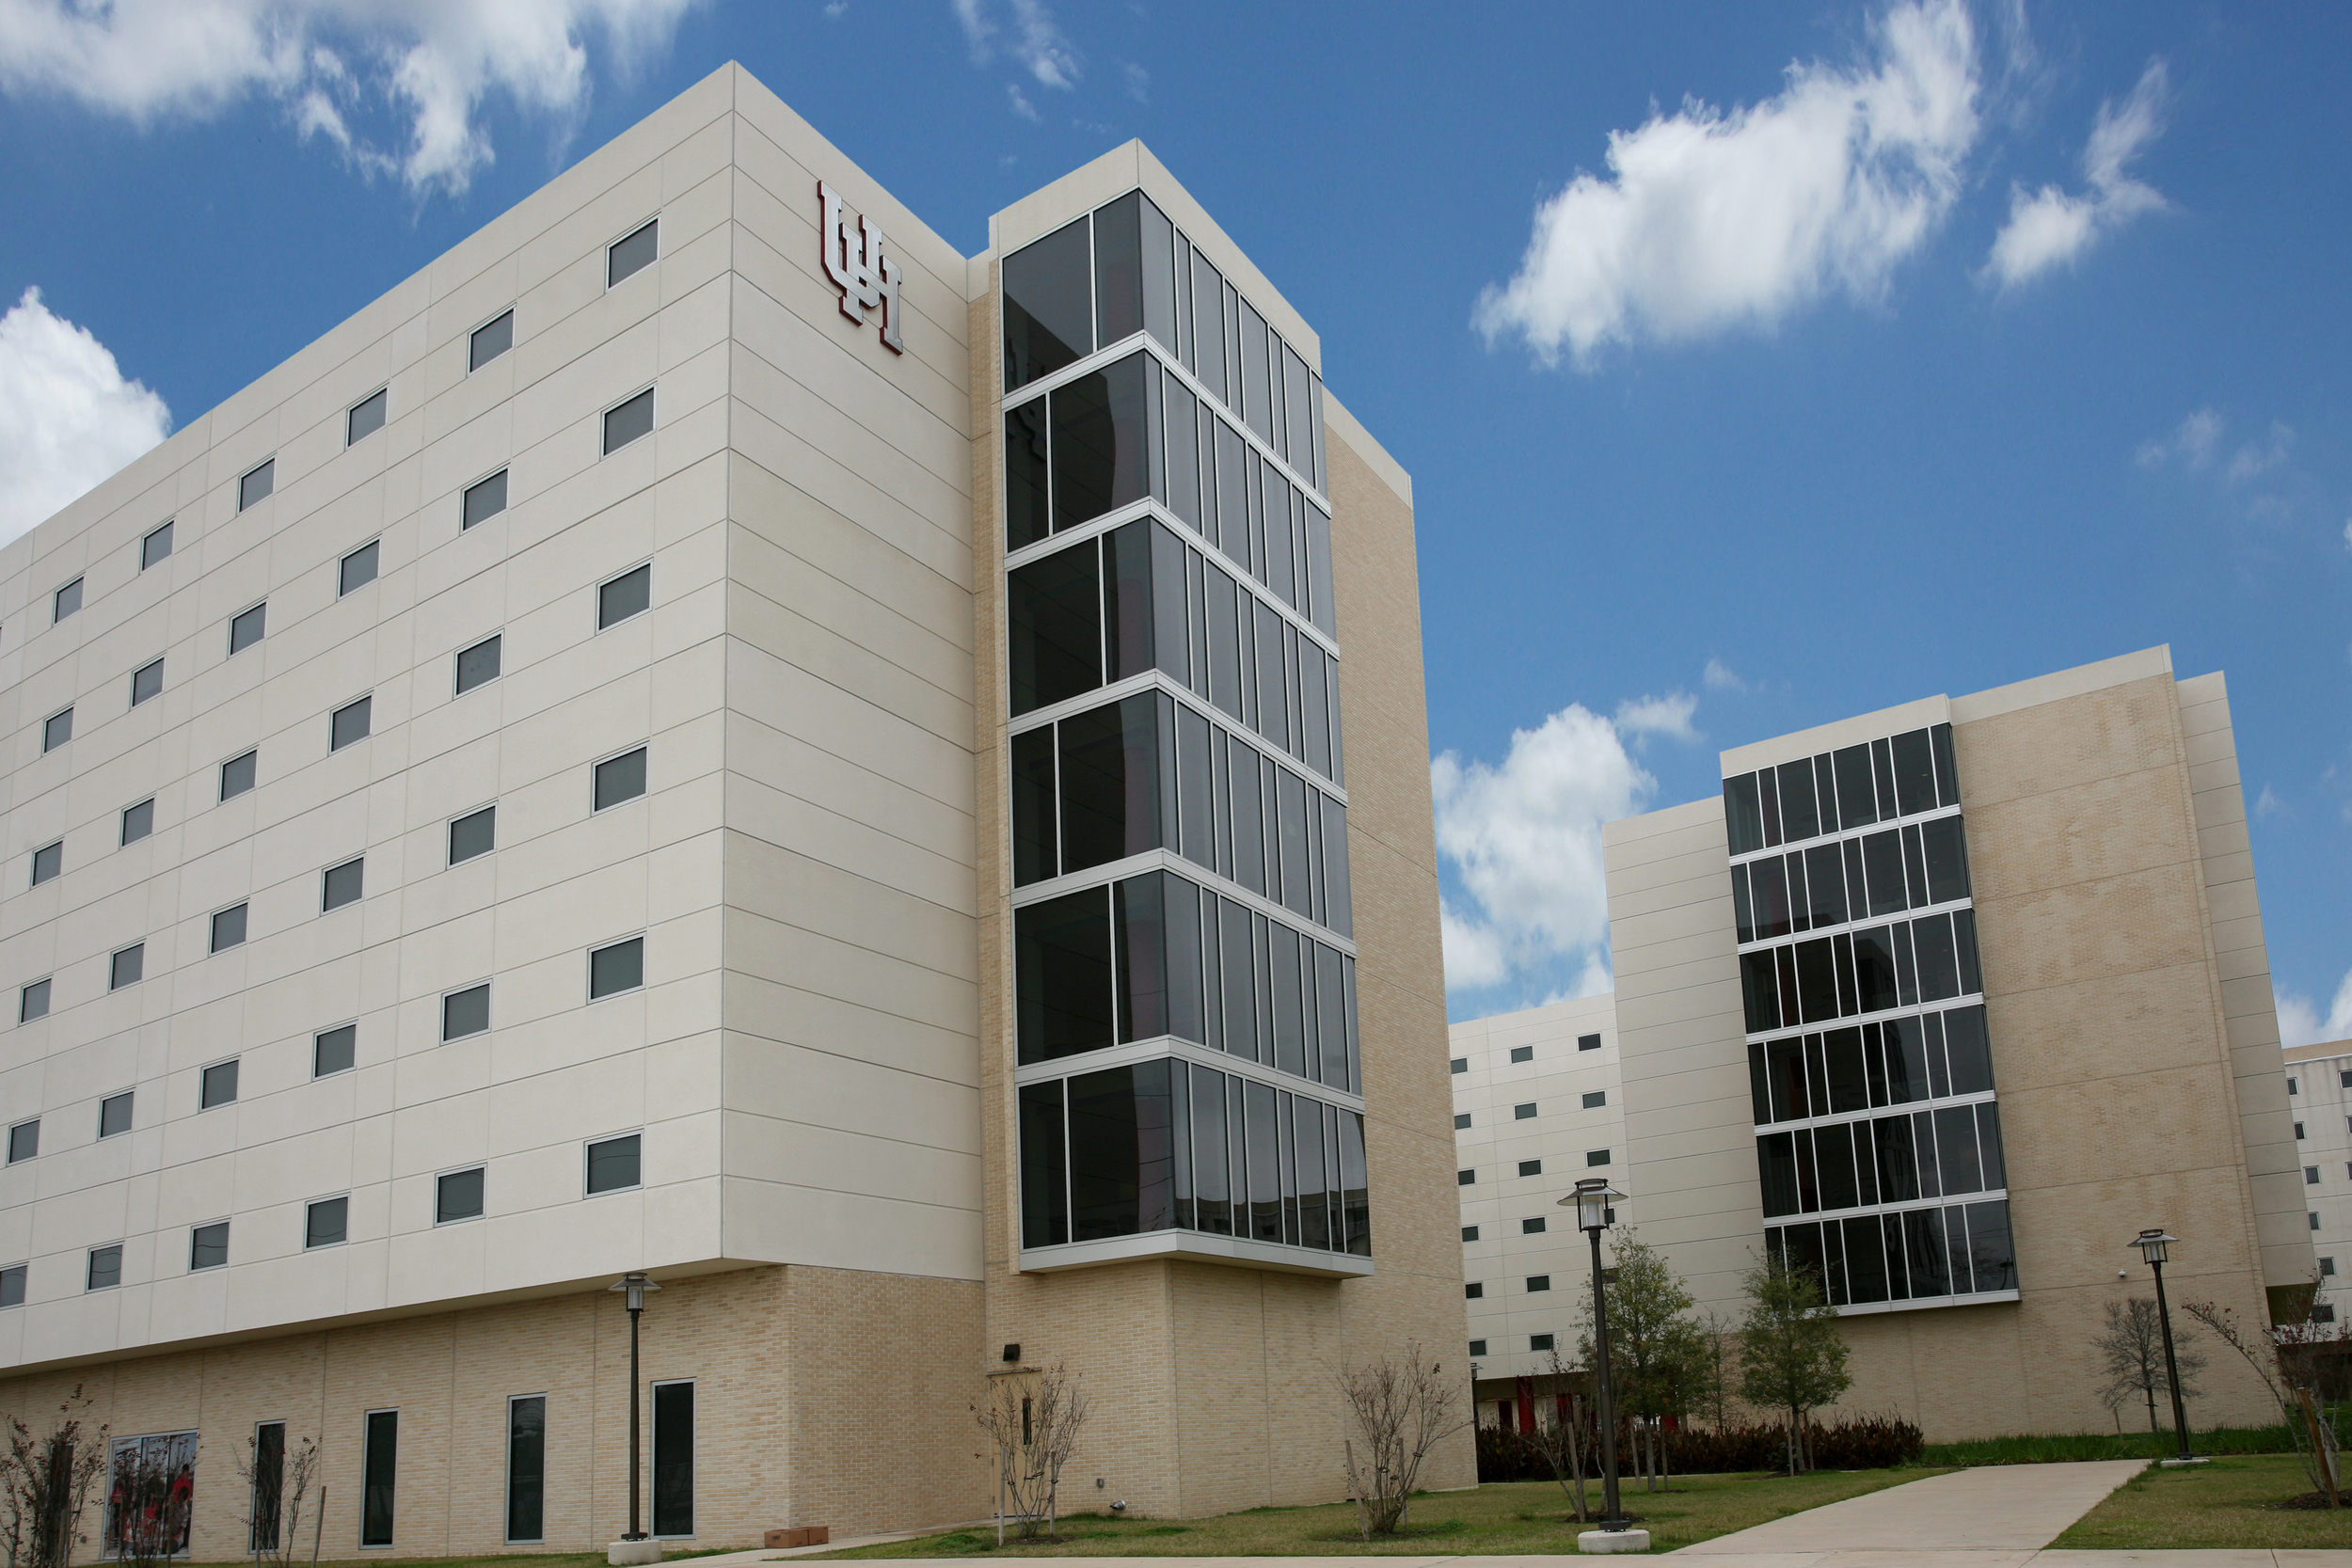 University of Houston Cougar Village. Project designed and managed by Oscar Valdez working at Haynes Whaley Associates